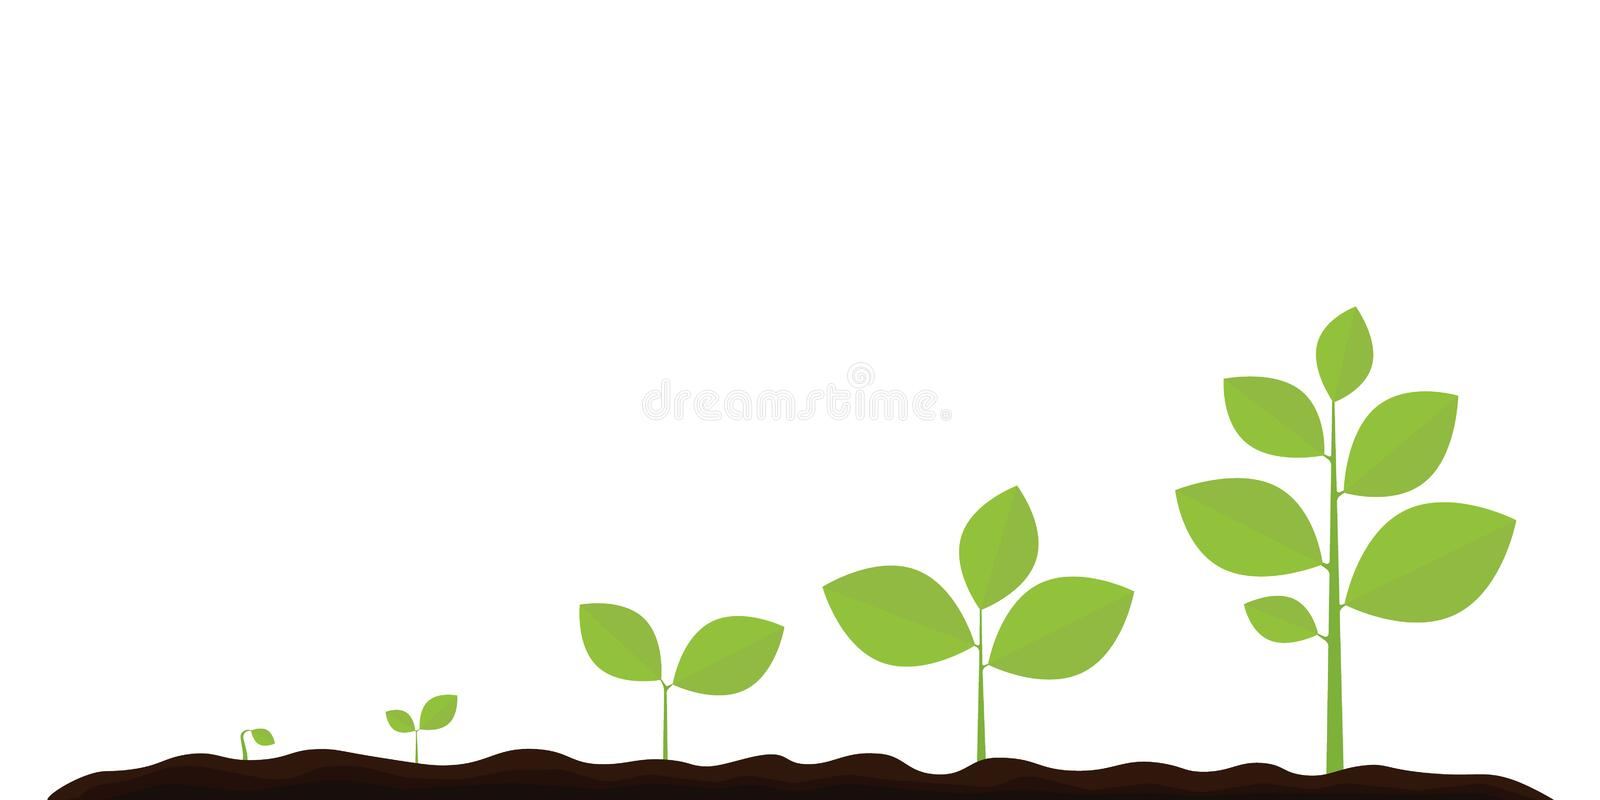 Infographic of planting tree. Seedling gardening plant. Seeds sprout in ground. Sprout, plant, tree growing agriculture icons. vector illustration